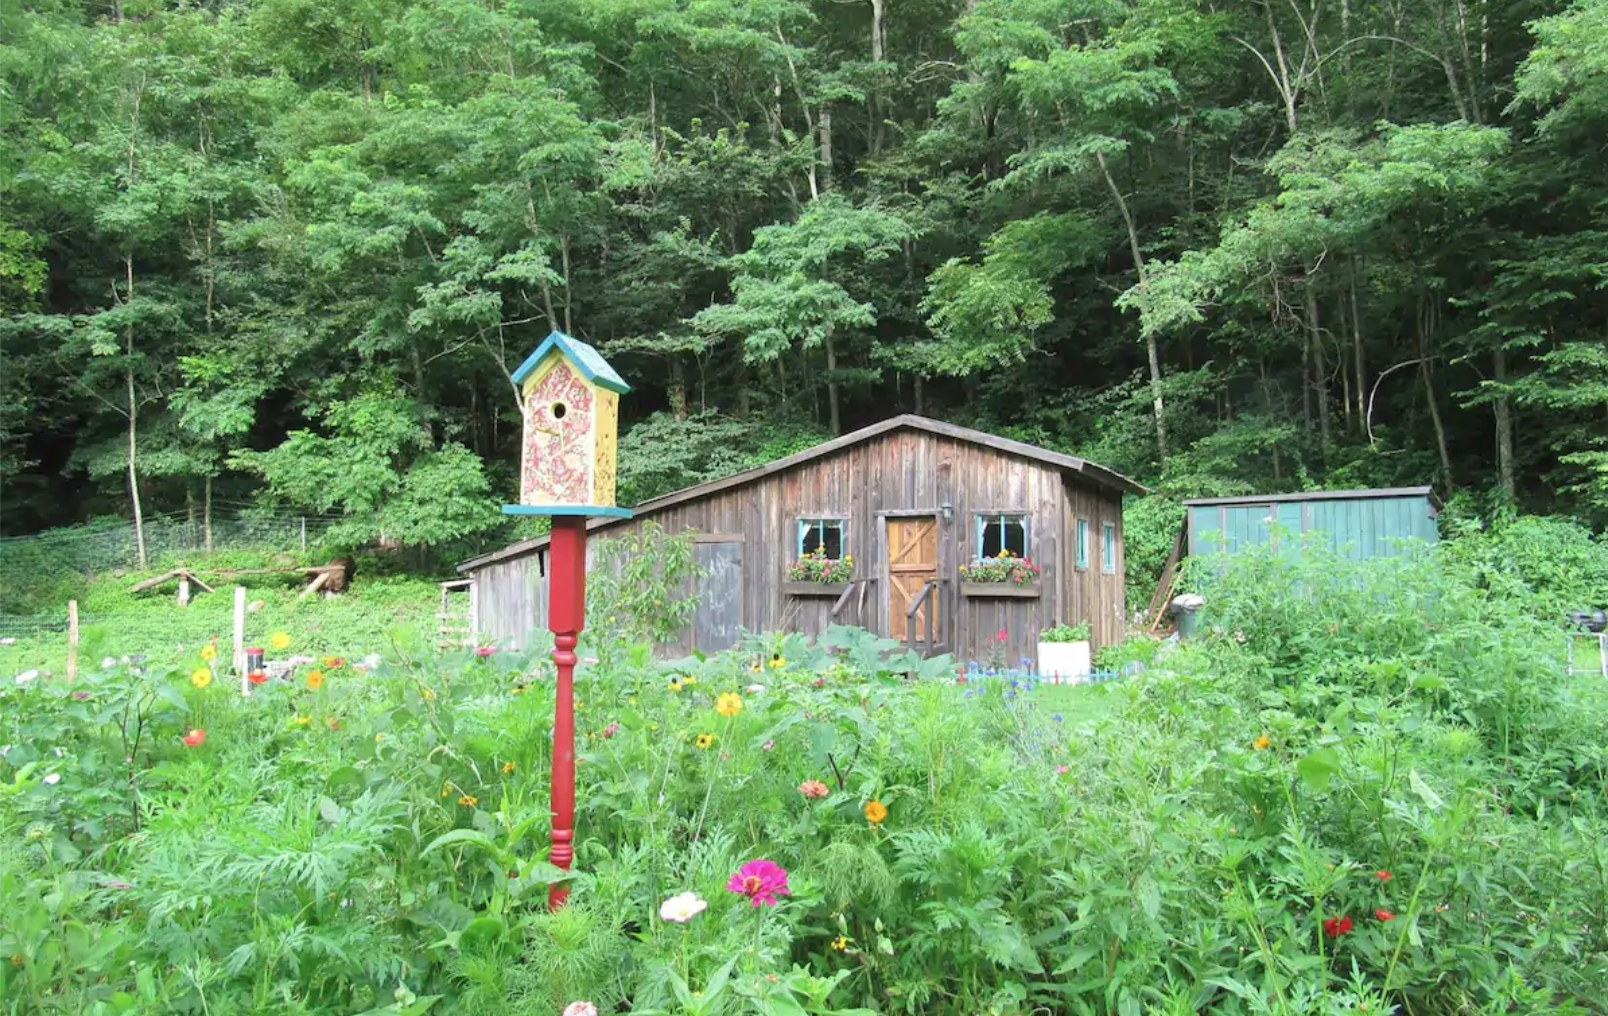 A yellow and red birdhouse stand in the garden in front of a wooden cabin with a slope roof and flowers in the windowsill.